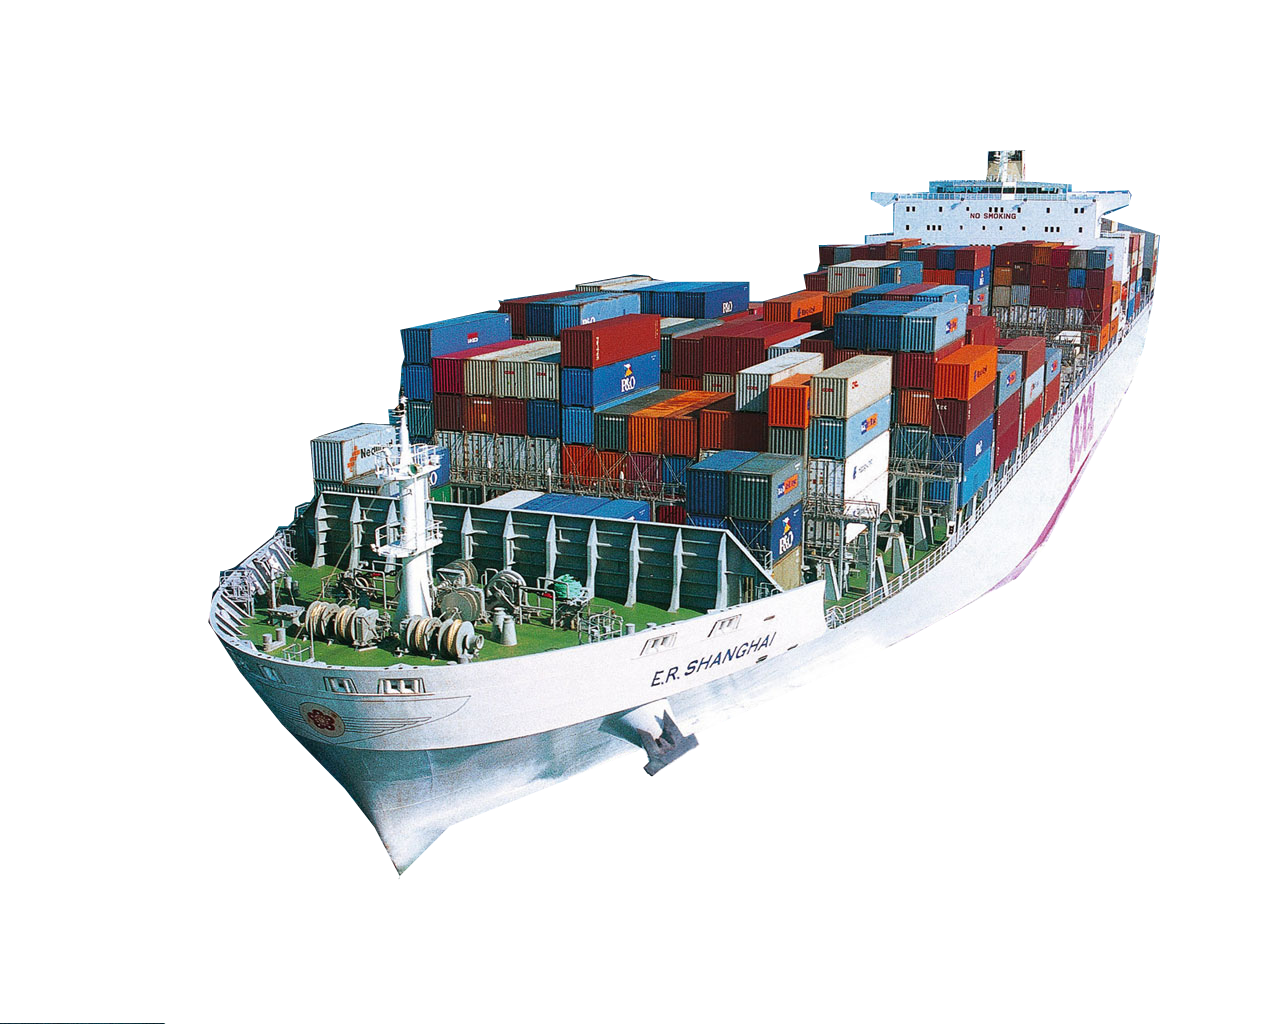 http://erledshipping.com/wp-content/uploads/2018/06/sea-shipping.png